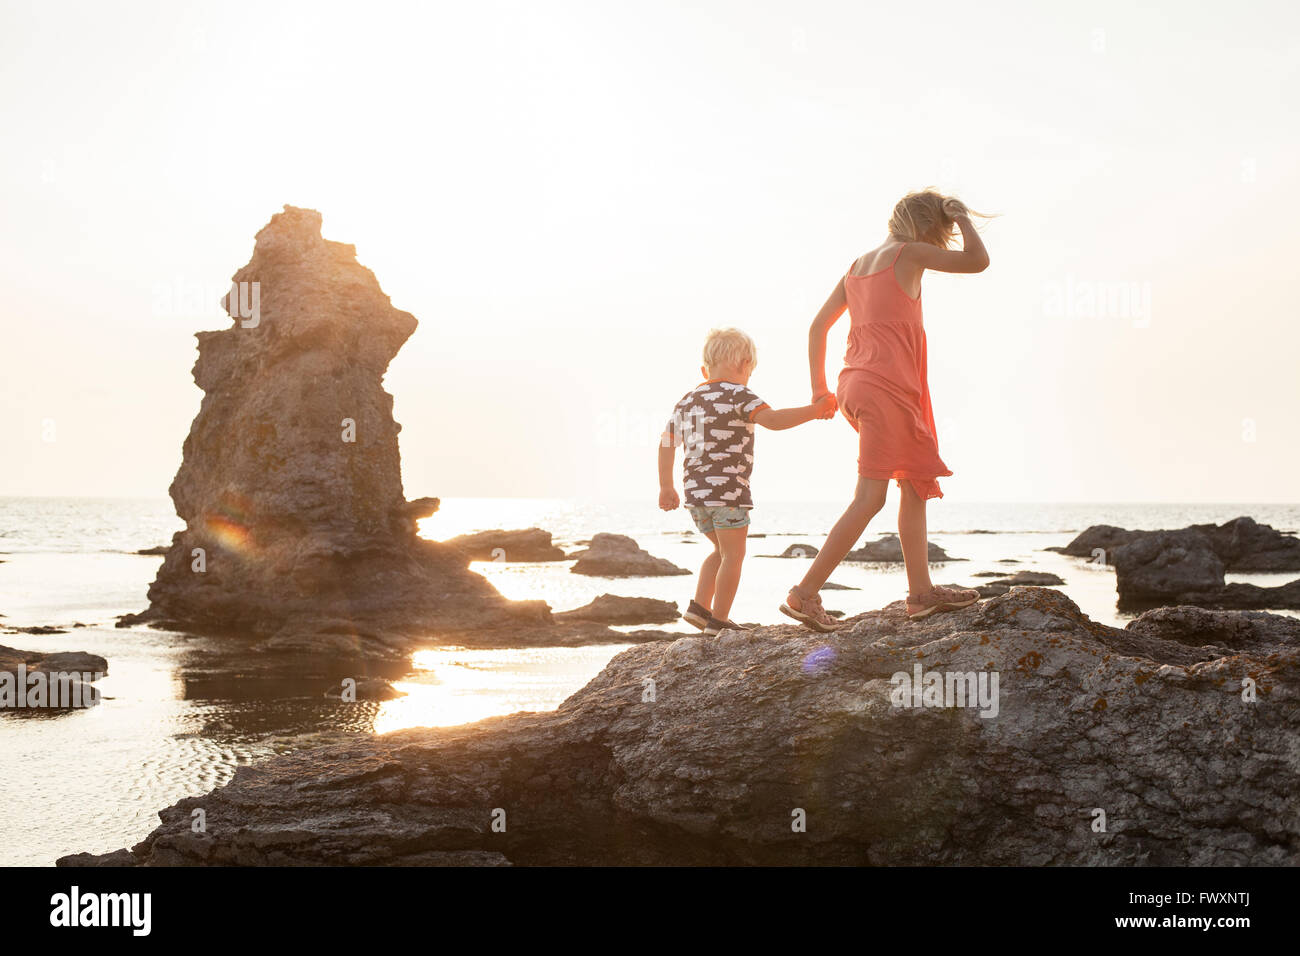 Sweden, Gotland, Faro, Gamle hamn, Girl (8-9) walking with brother (2-3) on coastal rocks Stock Photo